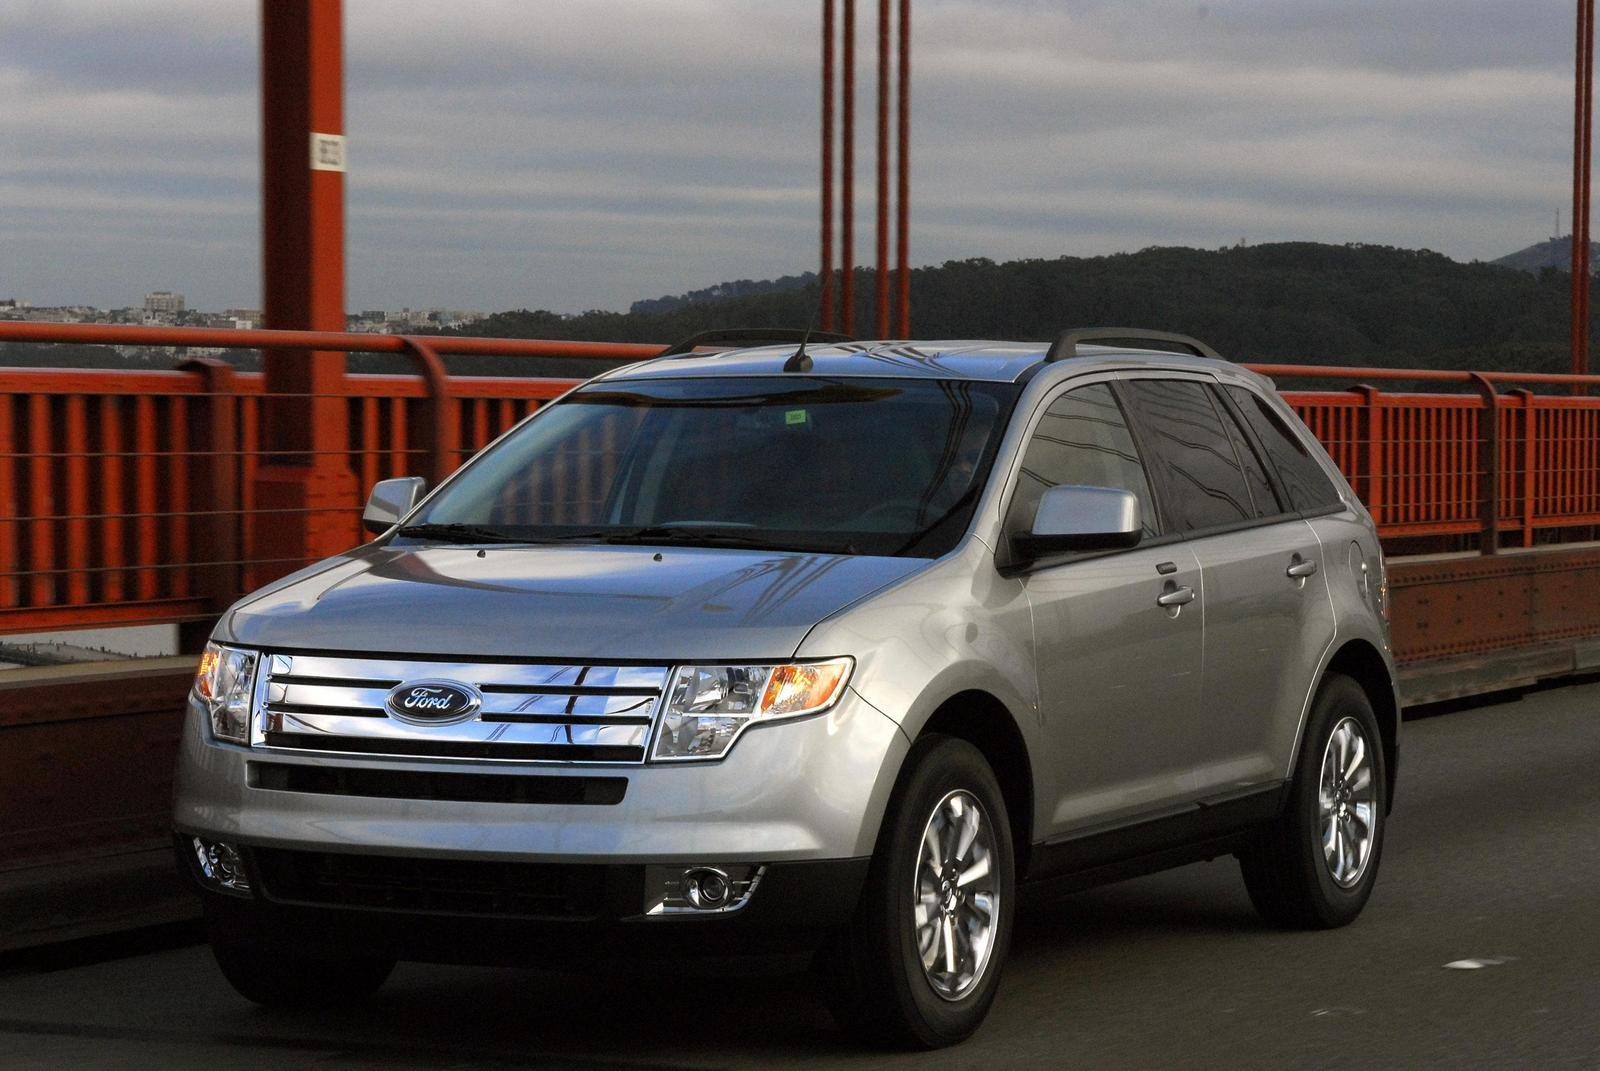 2007 ford edge picture 161931 car review top speed. Black Bedroom Furniture Sets. Home Design Ideas